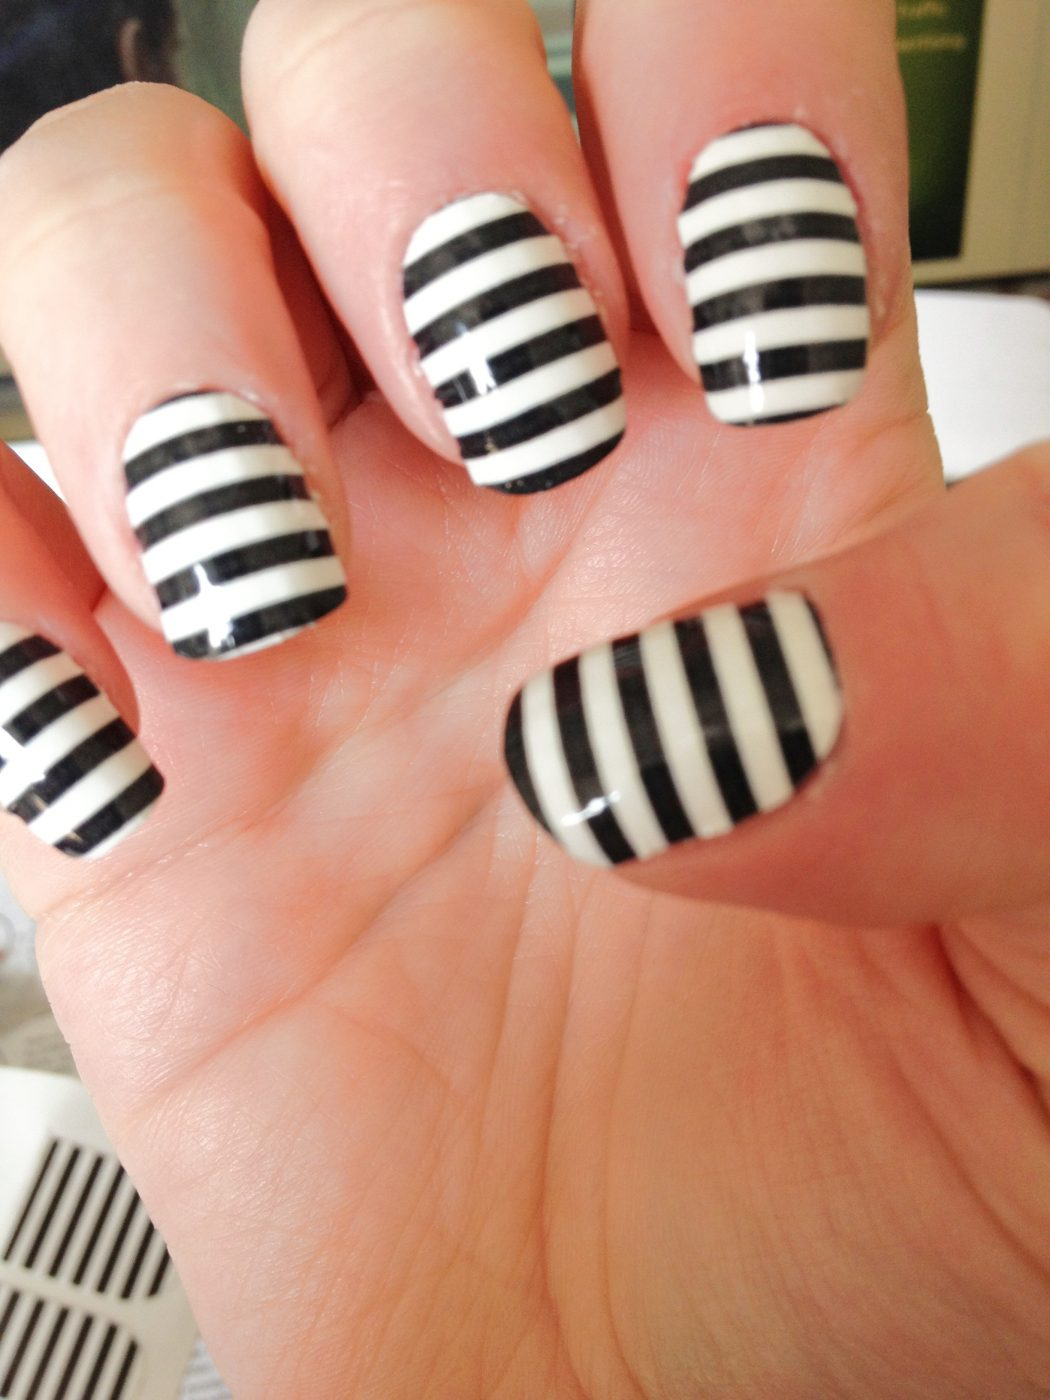 72f62548ceb6919c9381c6839d728ae7 50+ Coolest Wedding Nail Design Ideas